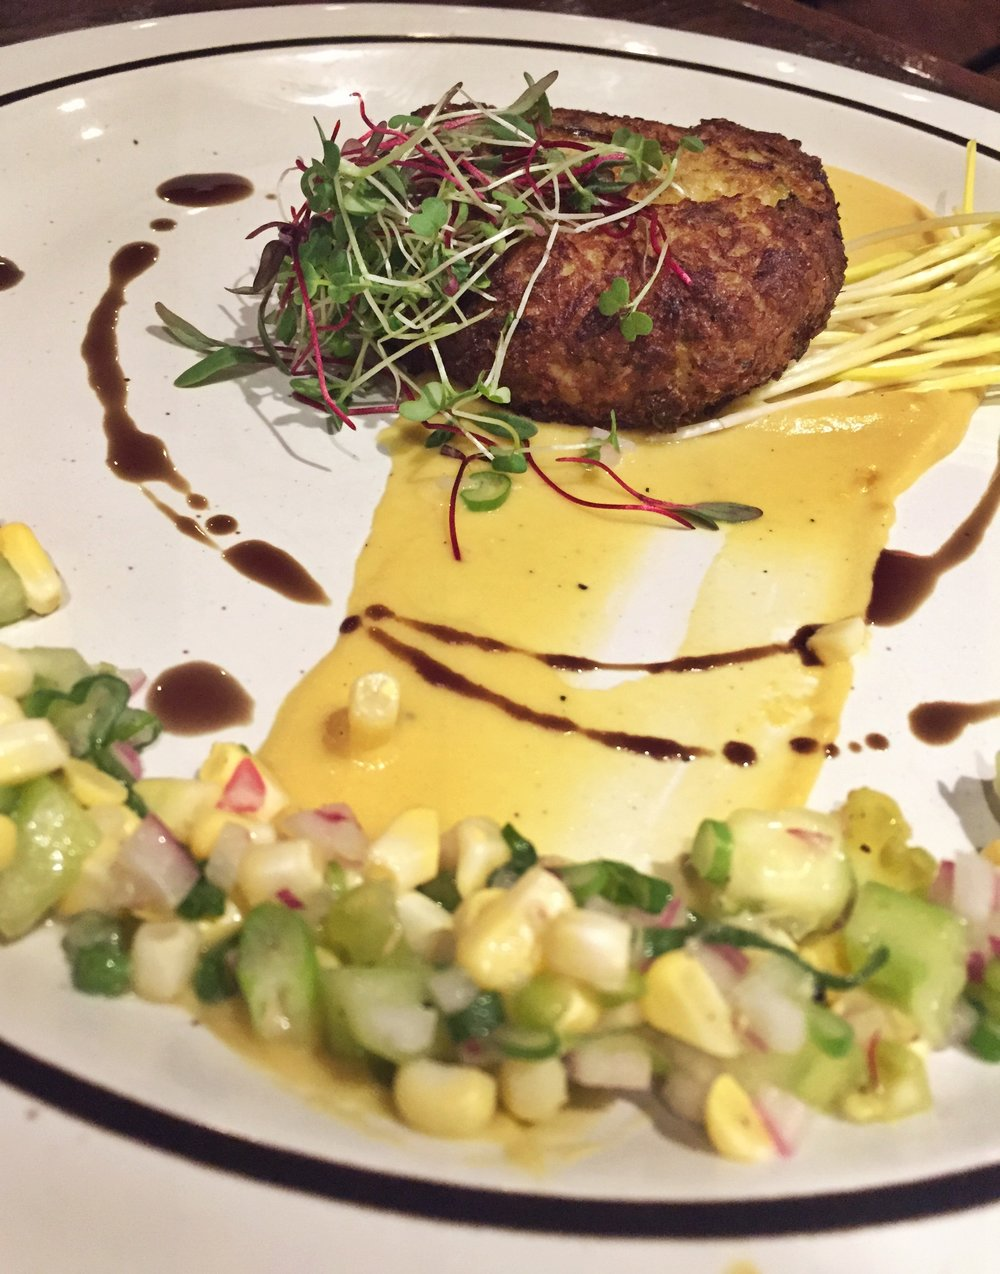 The crab cake and corn relish was perfectly cooked!